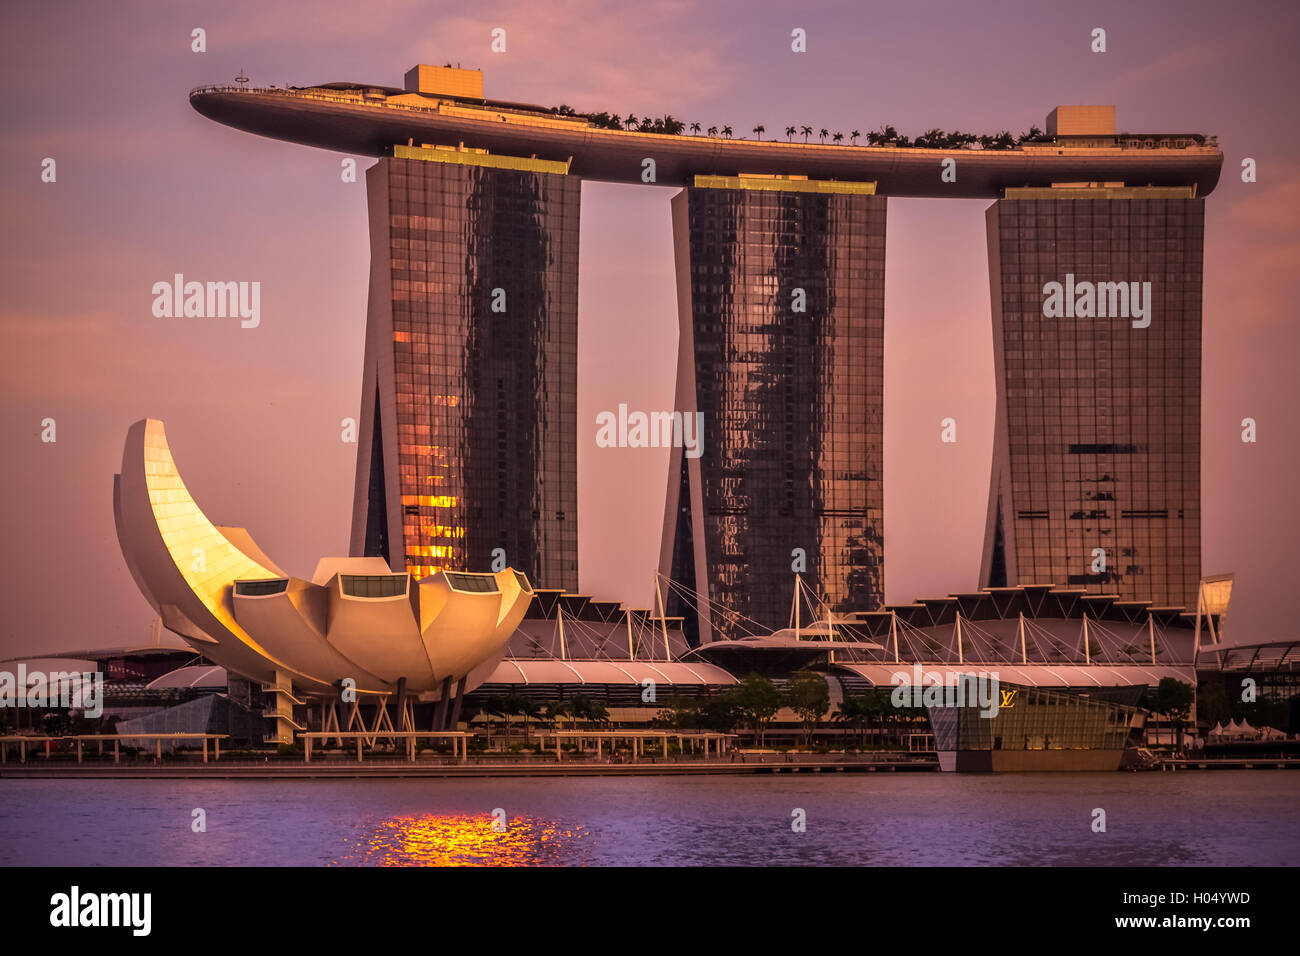 Singapore, Marina Bay sands, sunset, city, asia, travel, hotel, pool on the roof, golden shadow - Stock Image